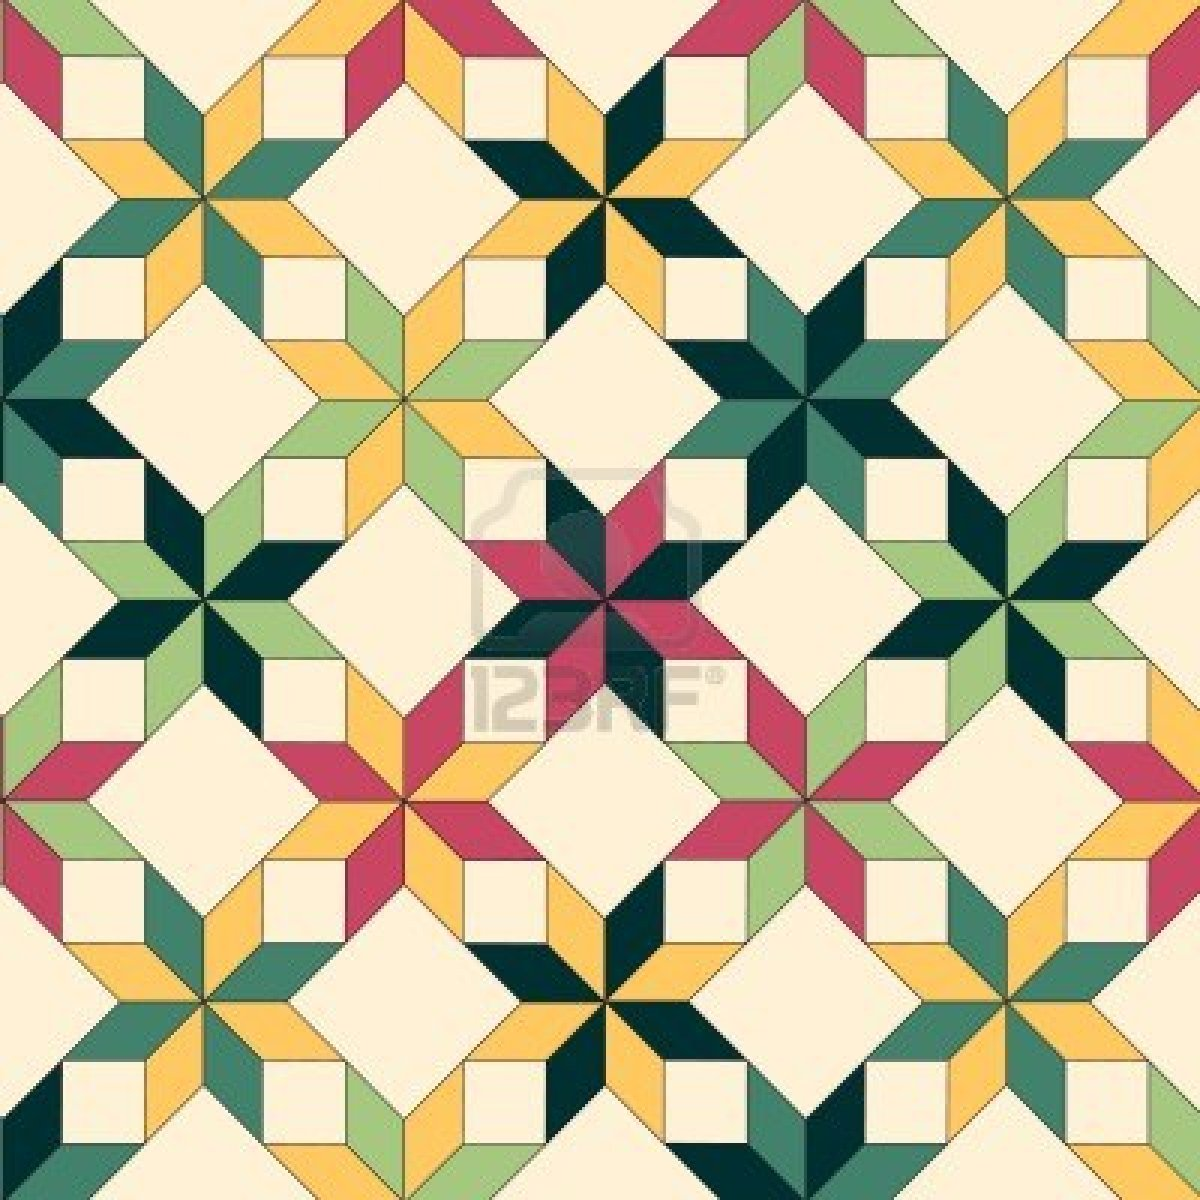 Antique quilt clipart jpg free library Quilting Clipart Group with 62+ items jpg free library